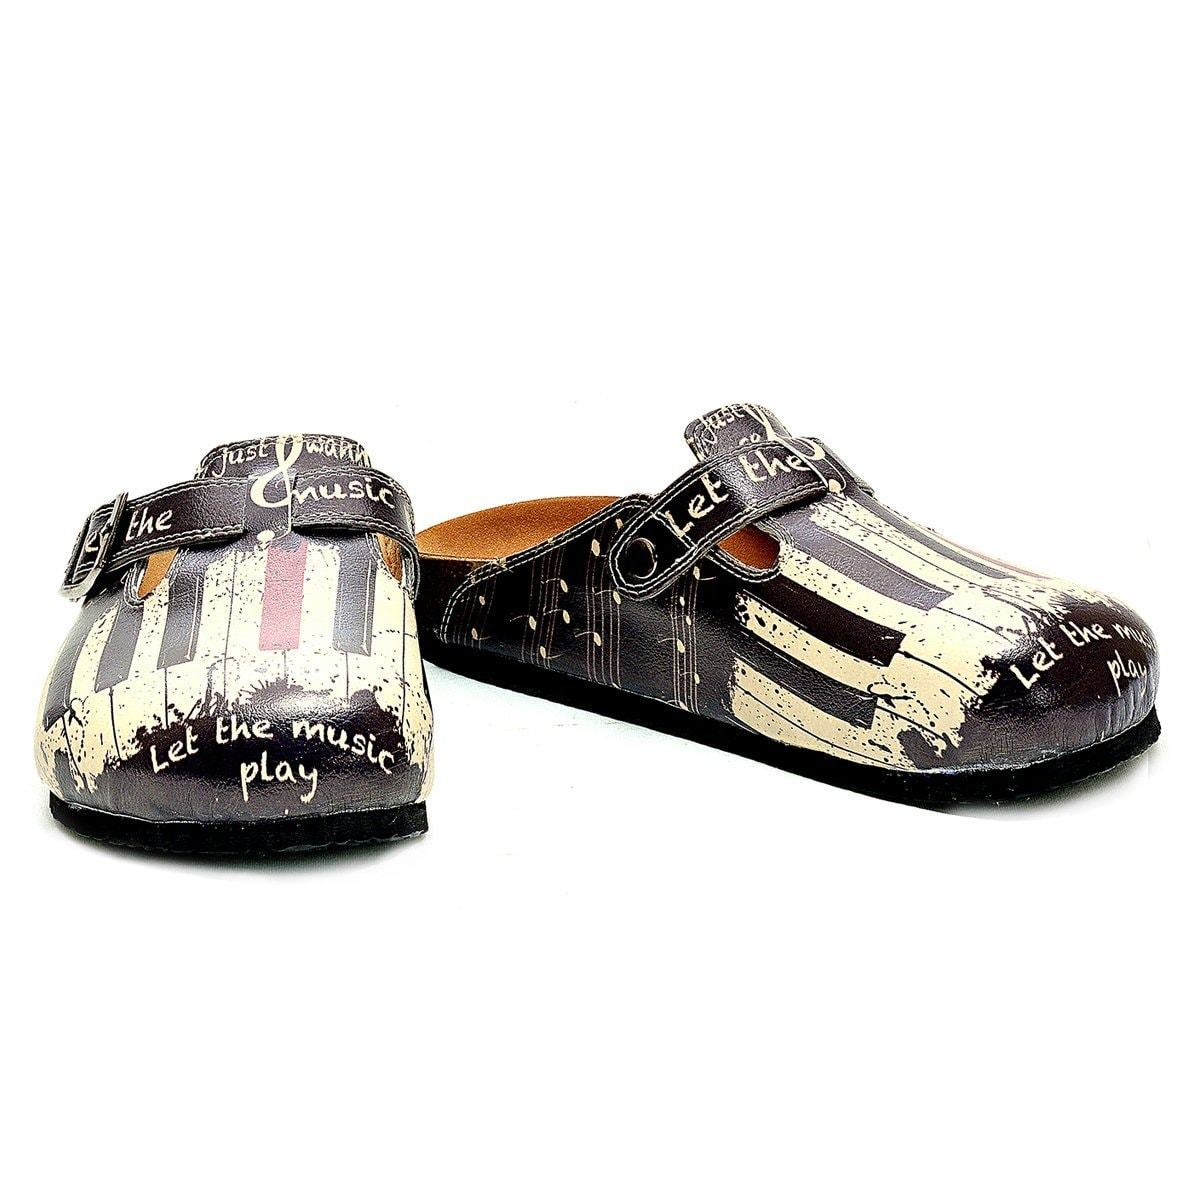 Black and White, Red Piano Pattern and Let the Music Play Written Patterned Clogs - CAL311